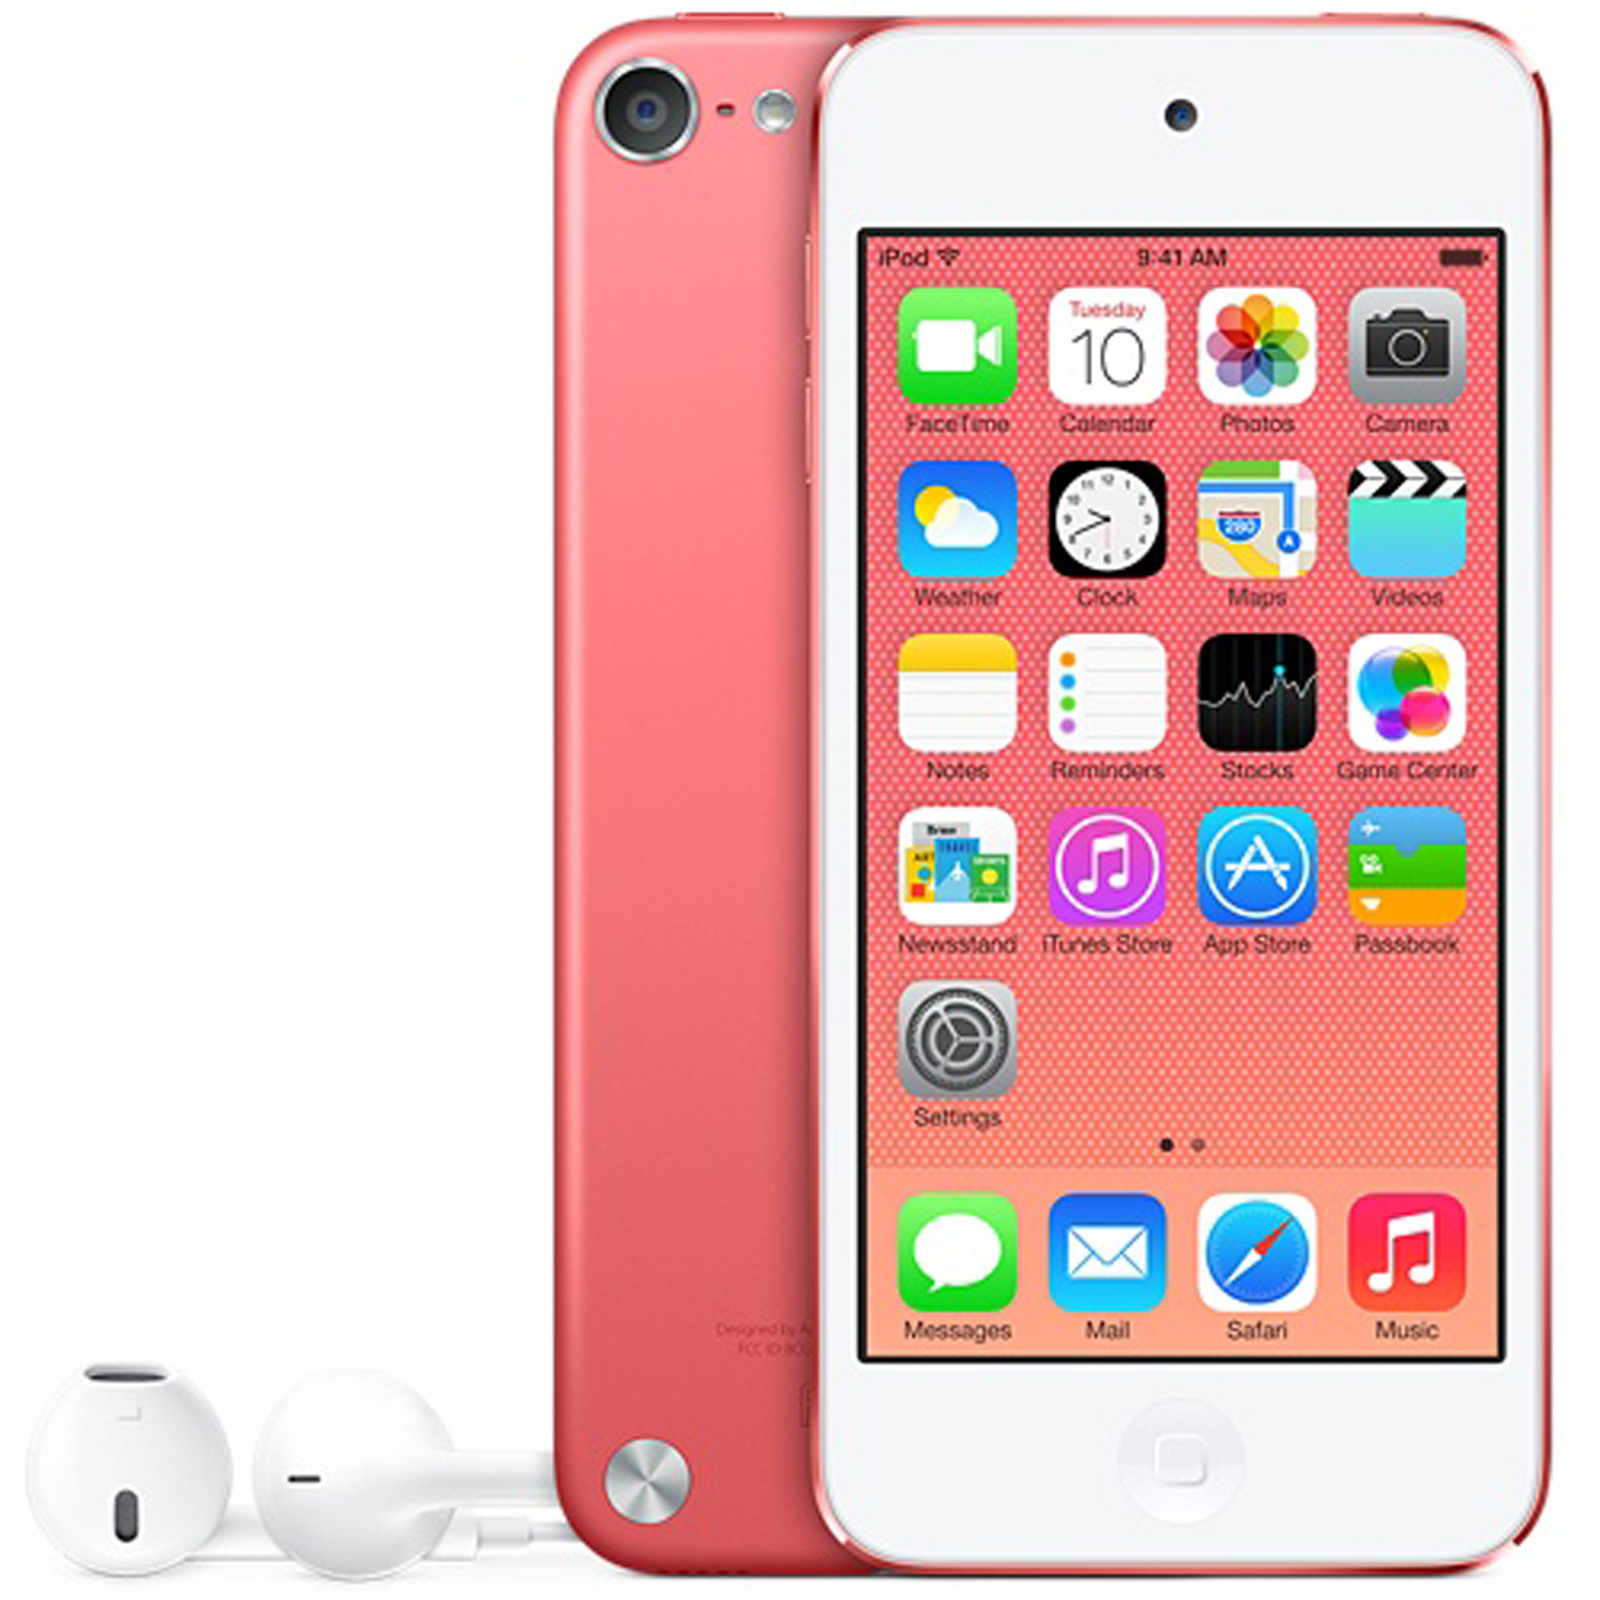 apple ipod touch 32 go rose lecteur mp3 ipod apple sur. Black Bedroom Furniture Sets. Home Design Ideas